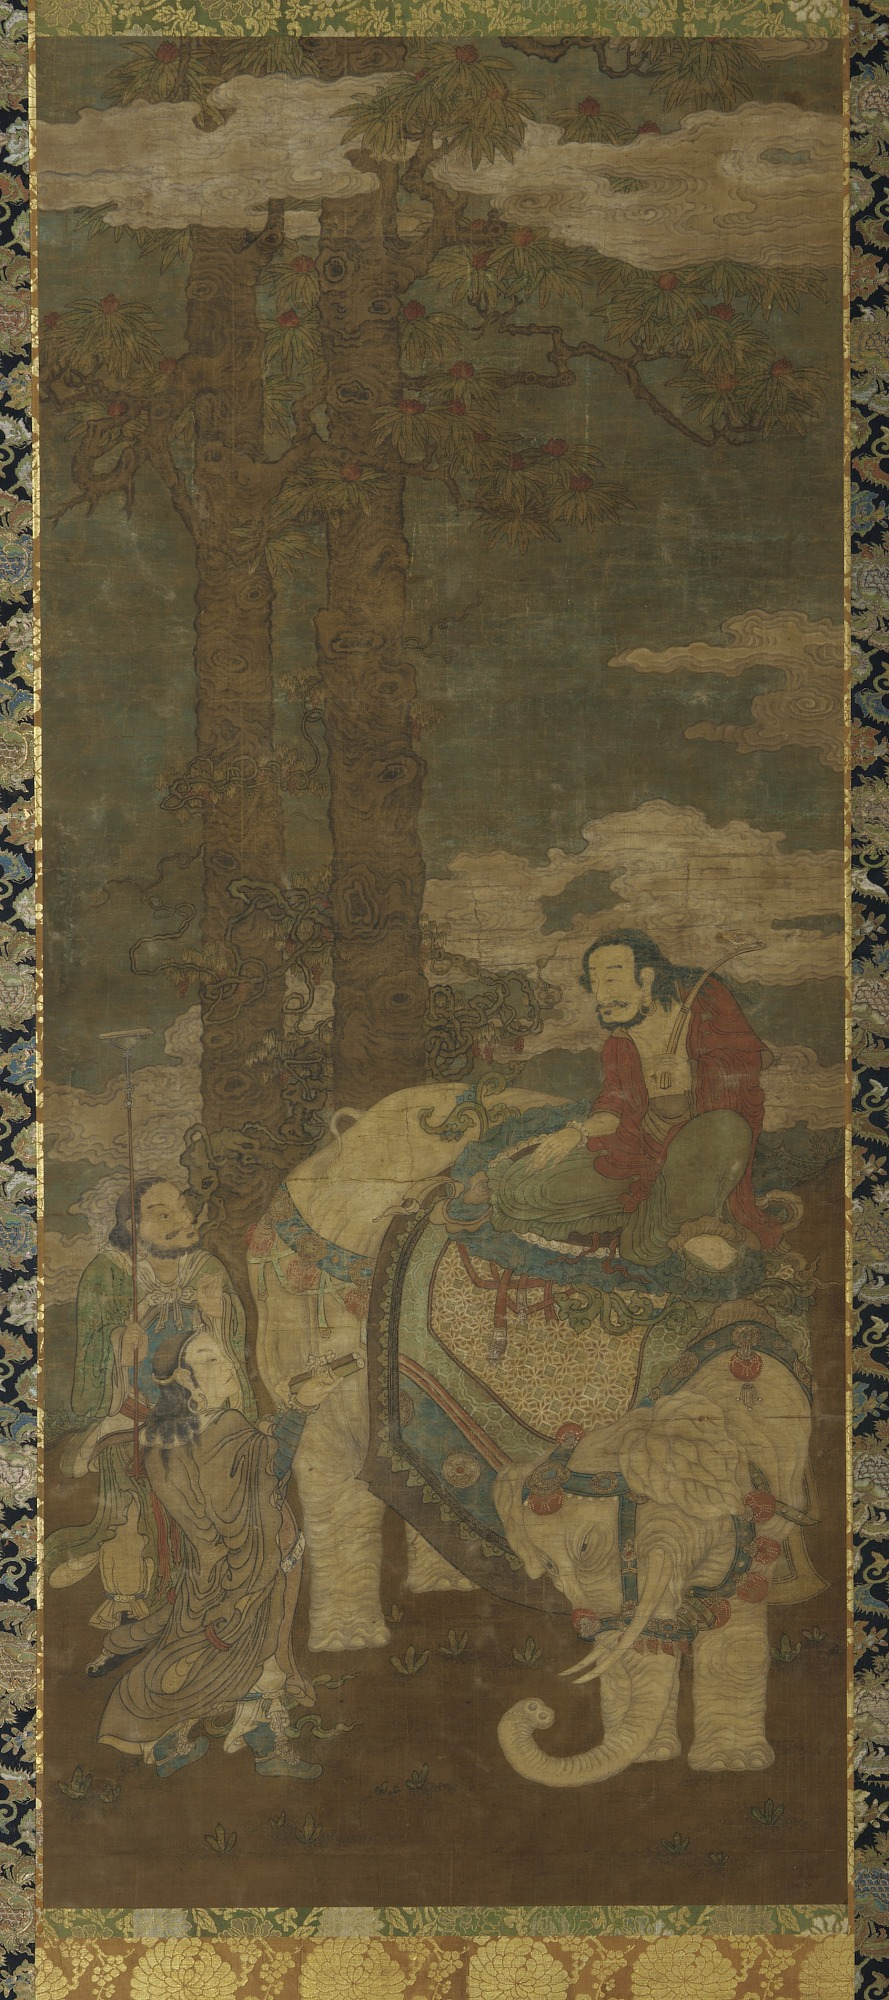 Sakyamuni on an Elephant